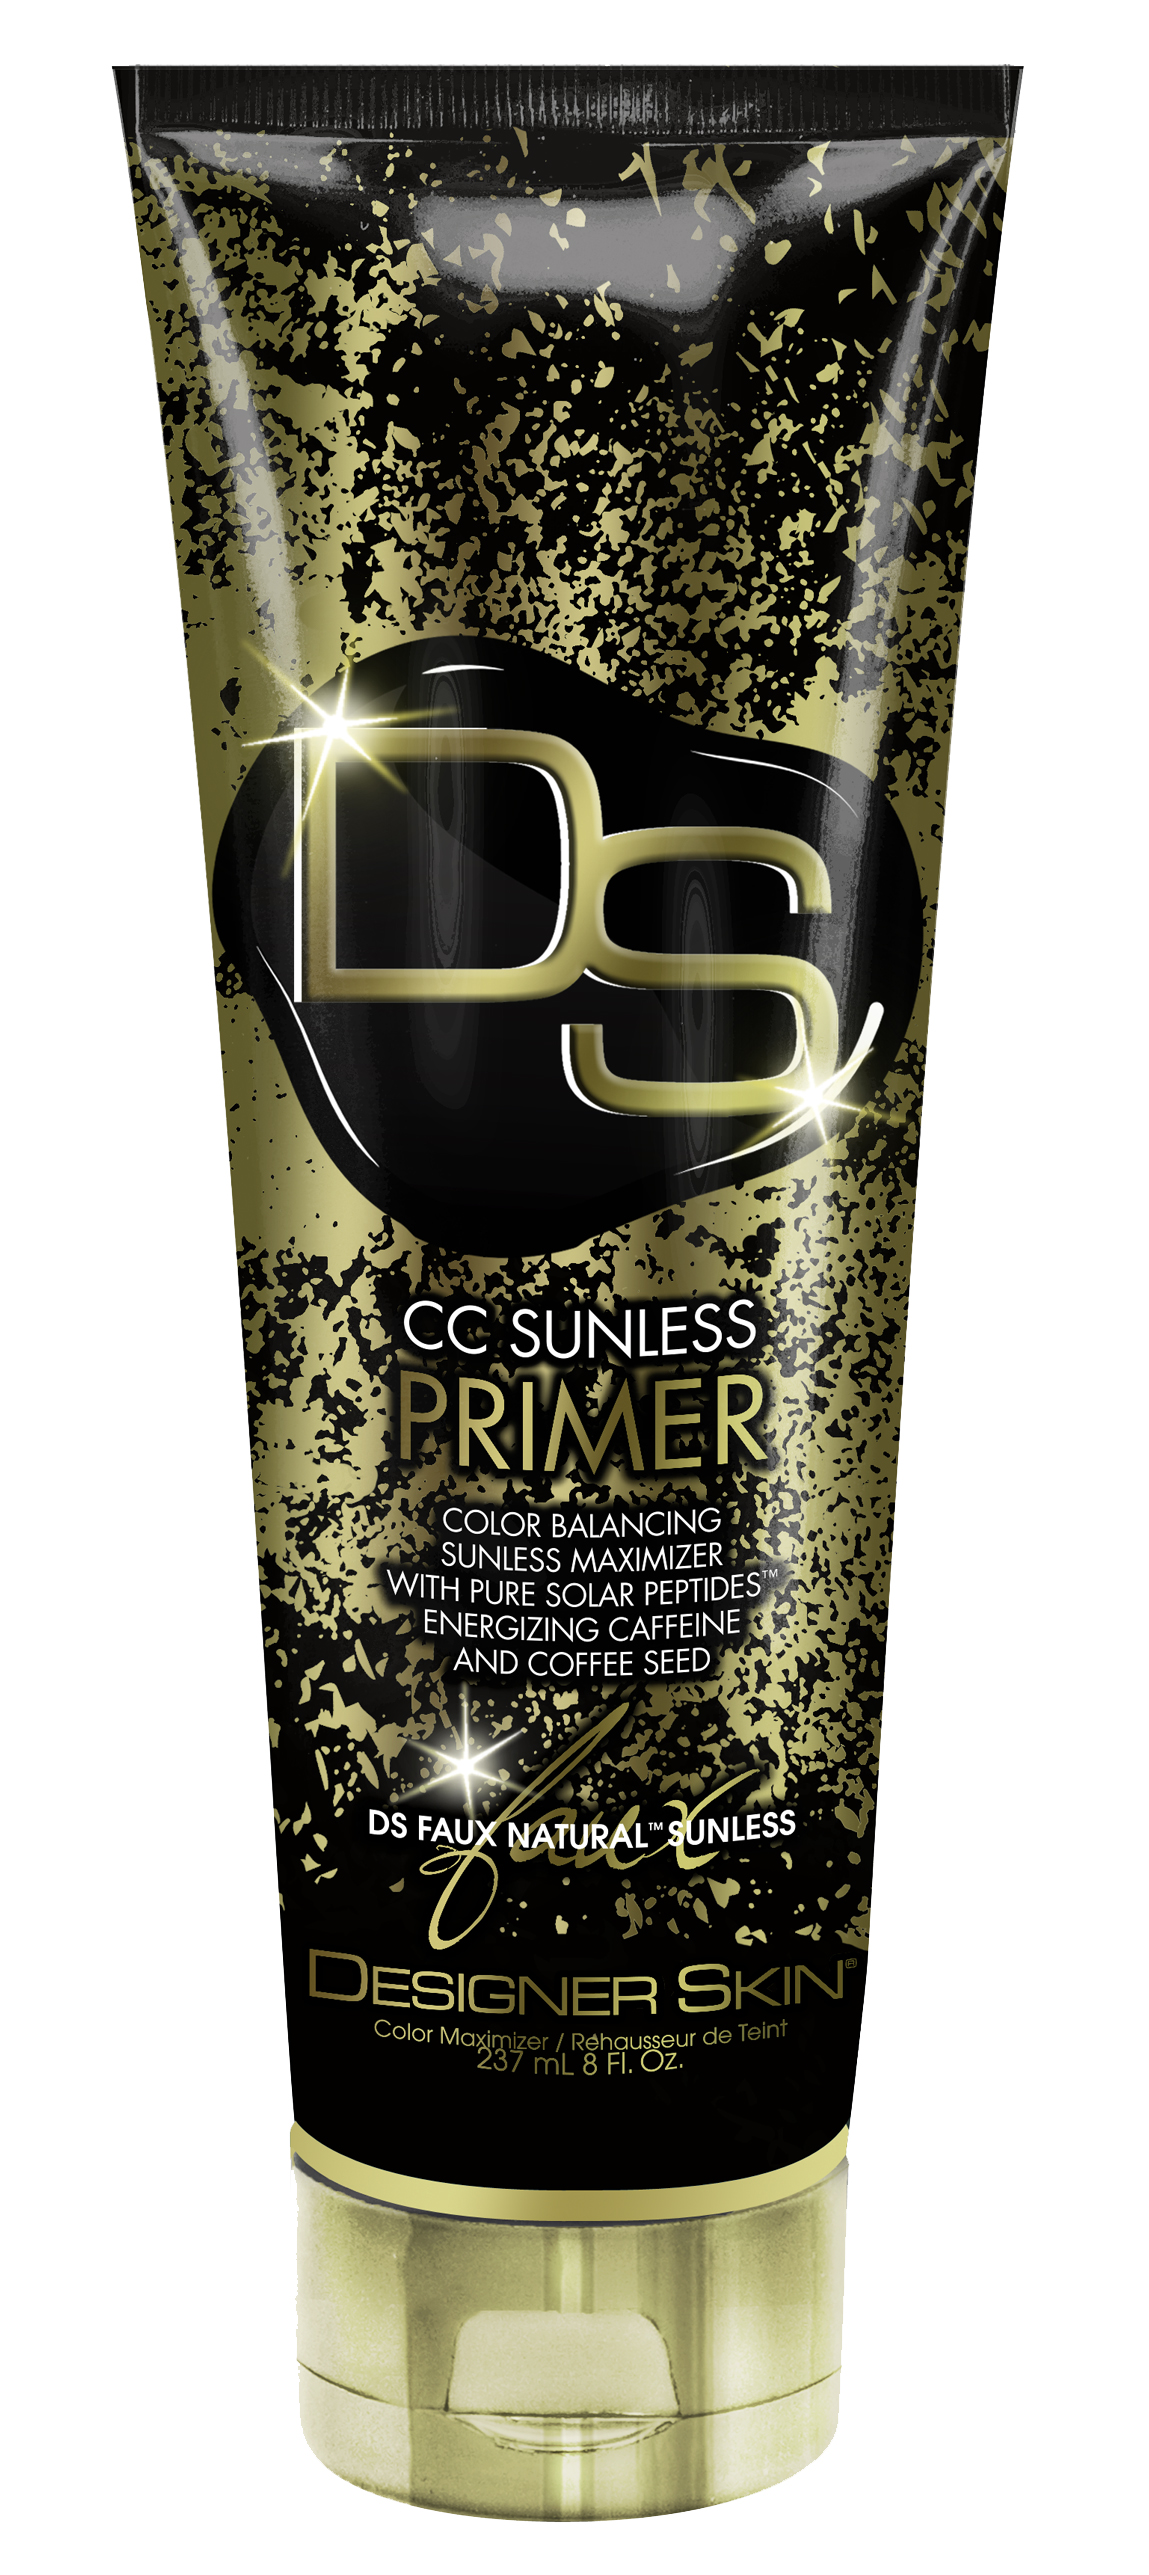 Faux Natural Sunless CC Primer